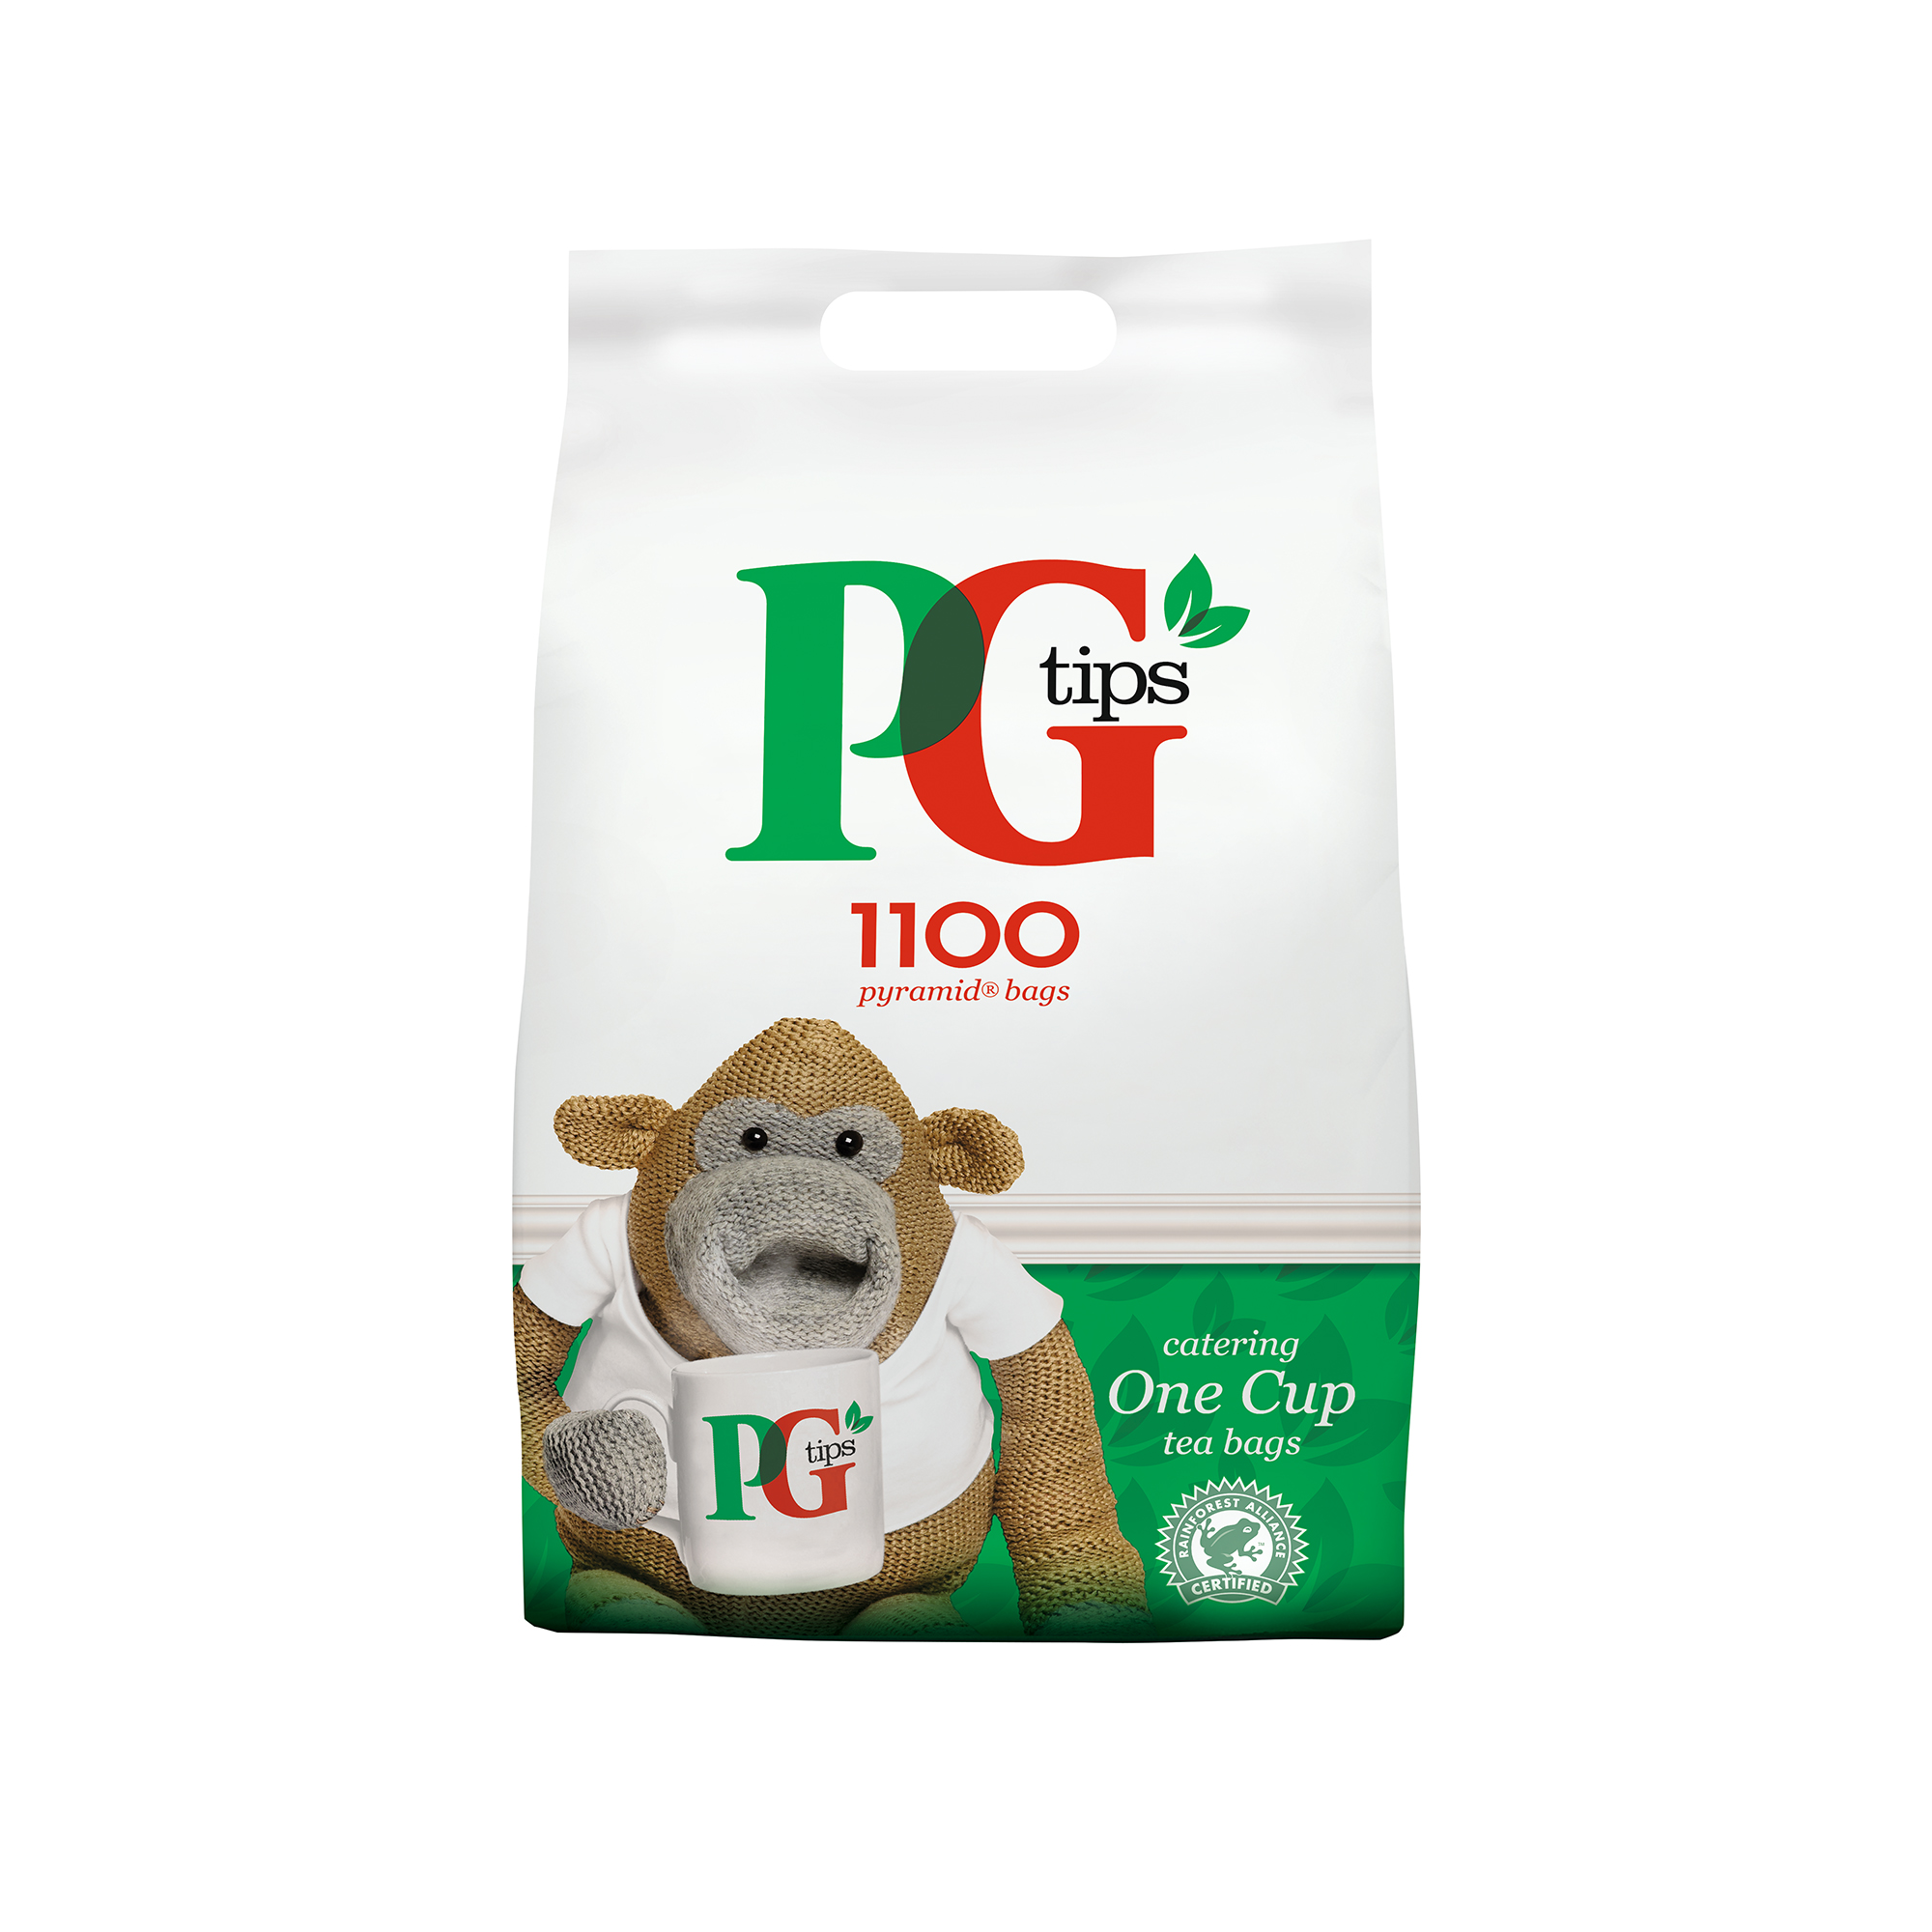 PG TIPS PYRAMID TEA BAGS (pk 1100)